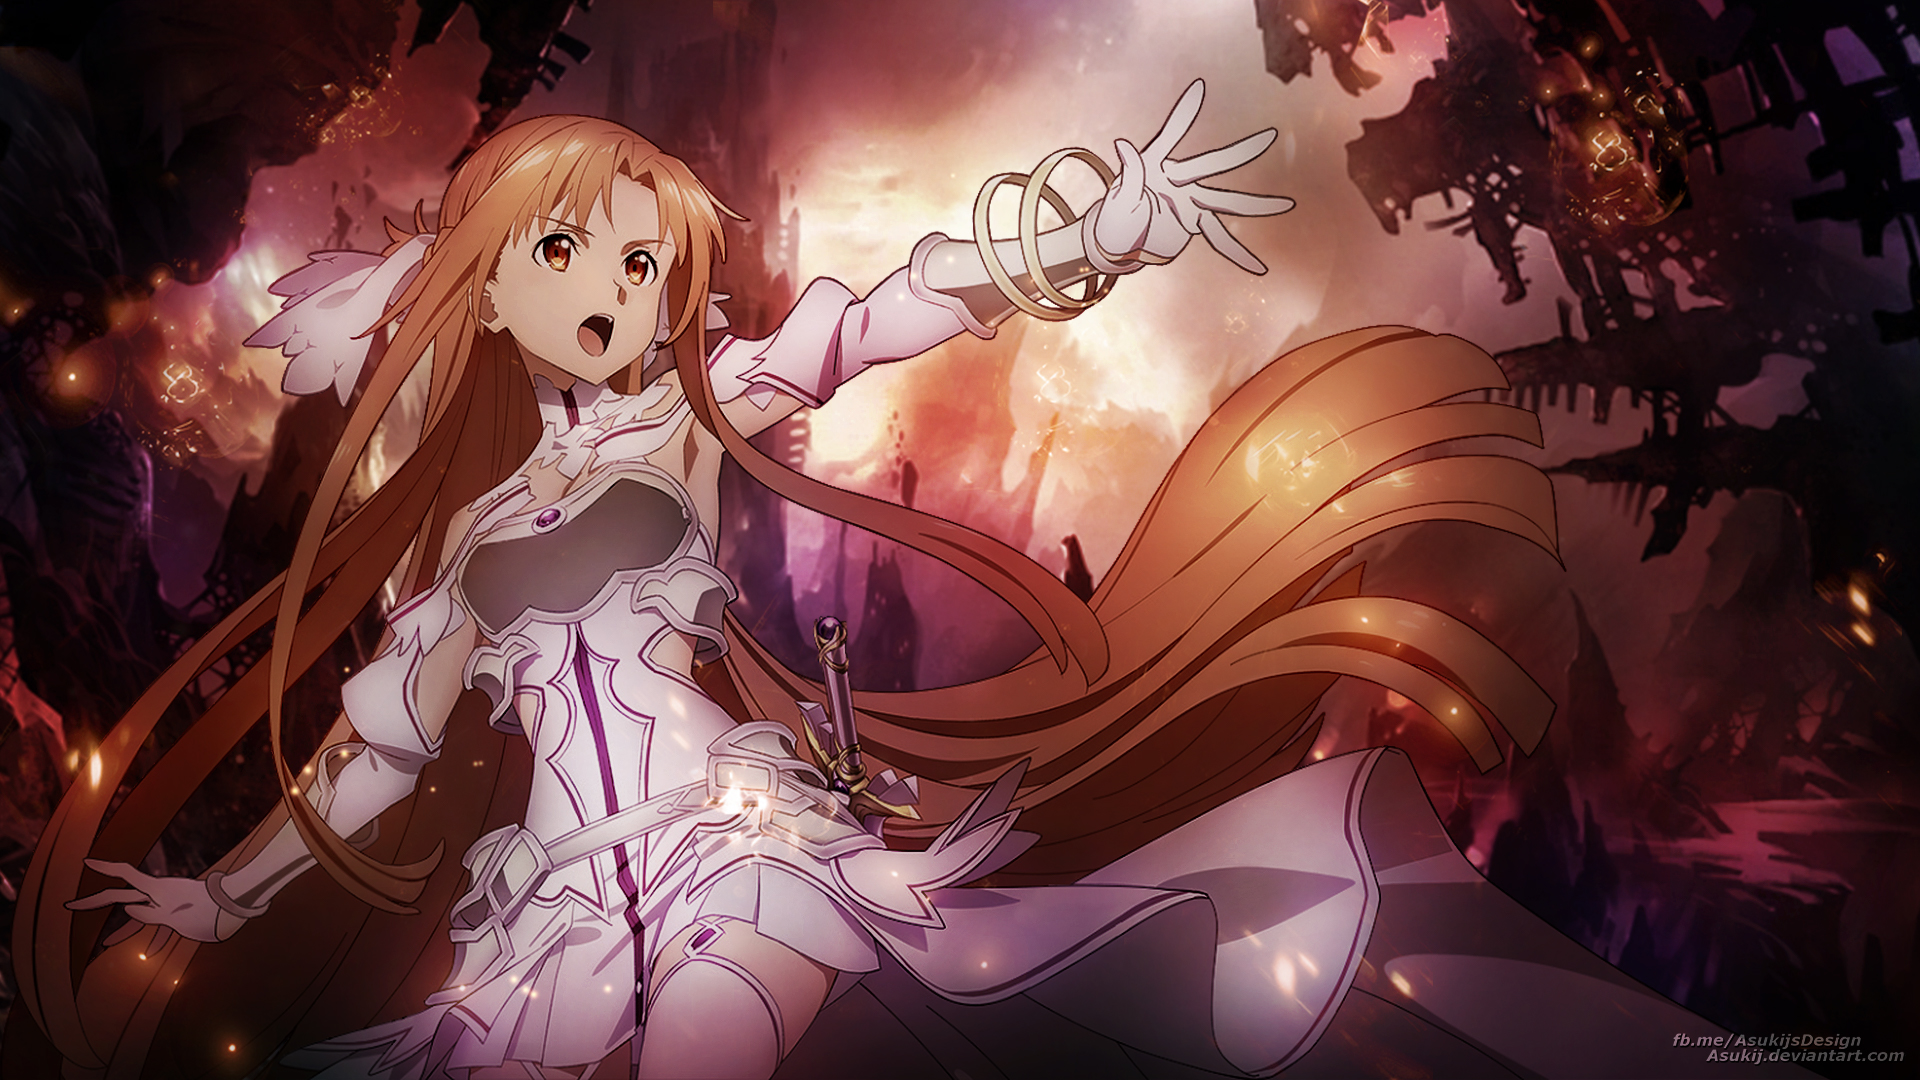 Wallpaper Stacia Asuna By Asukij On Deviantart